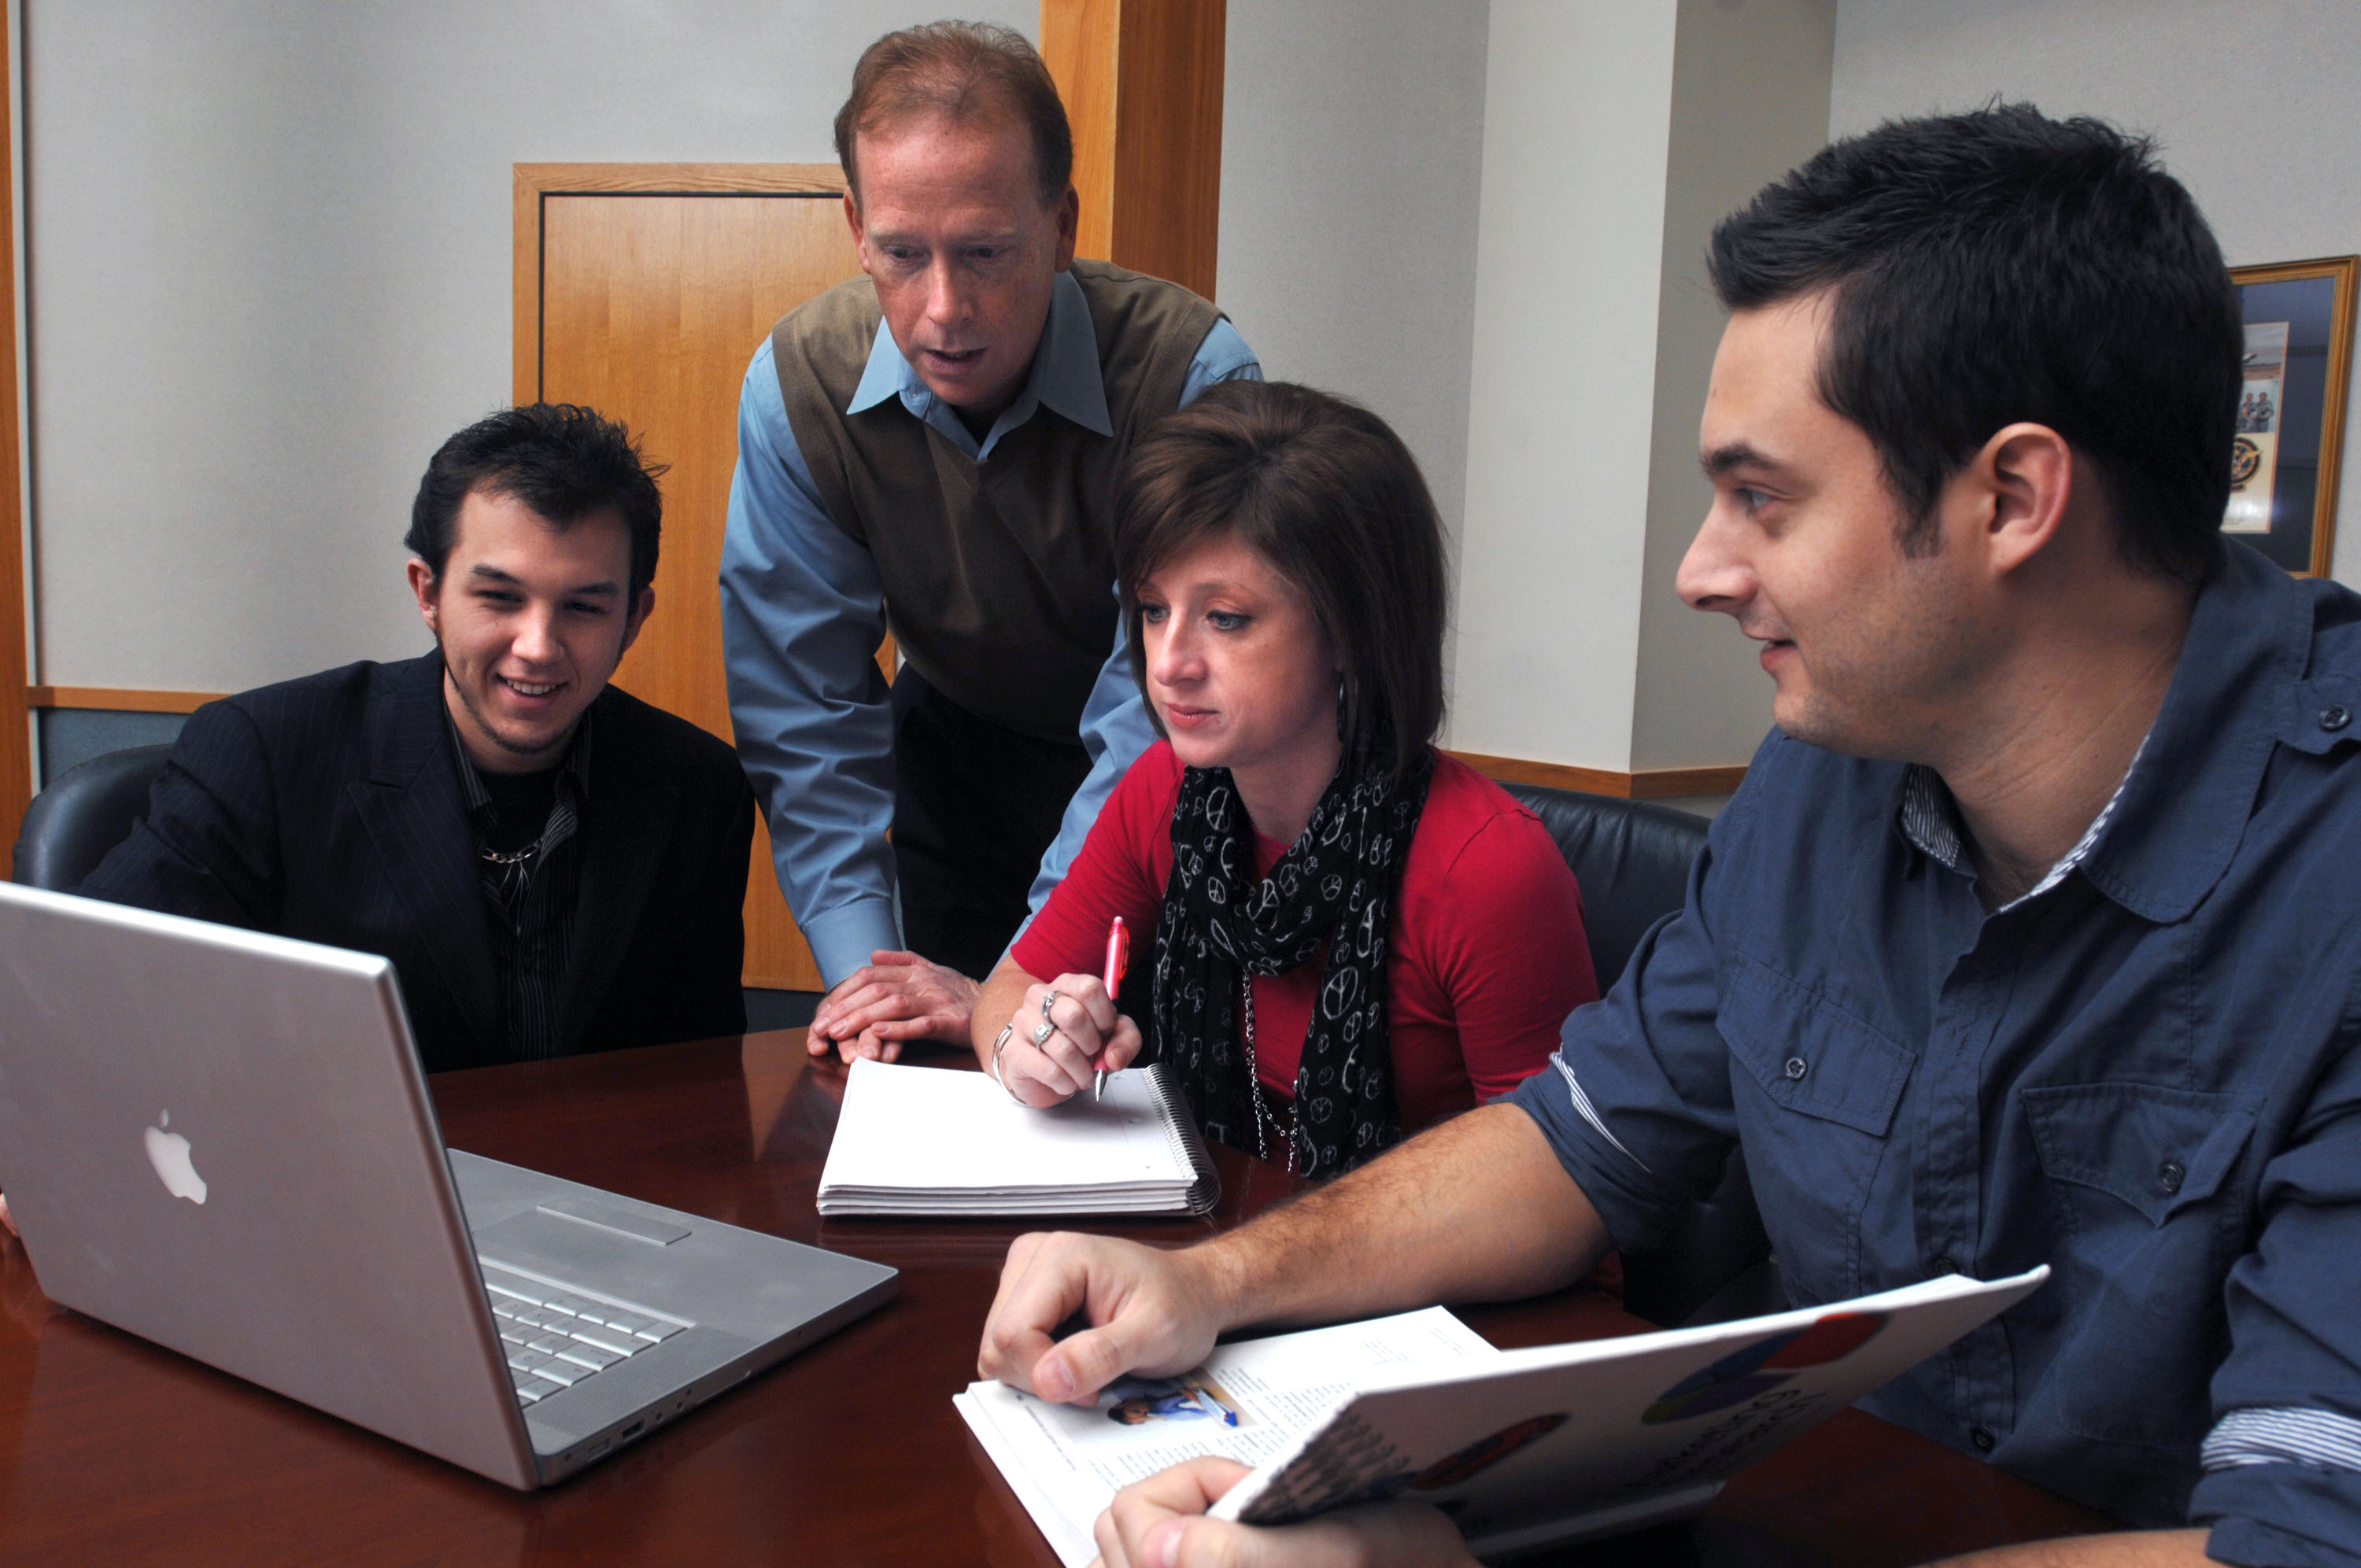 group of students viewing information on a laptop during class